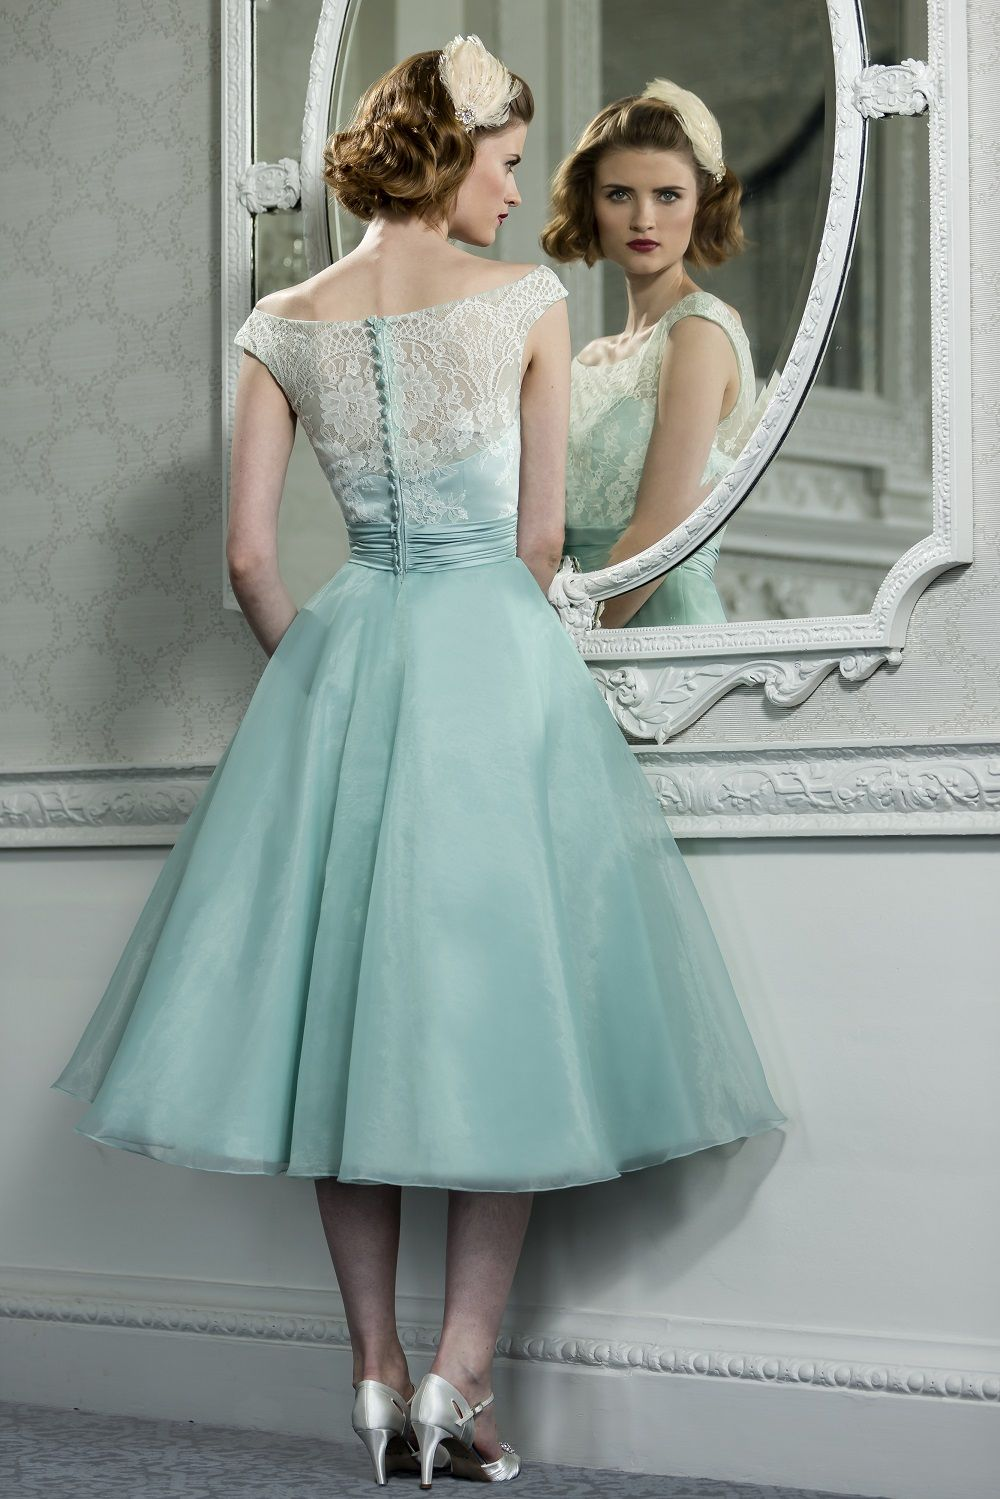 Victoria Vintage - Dresses - Not Another Boring Bridesmaid Dress ...